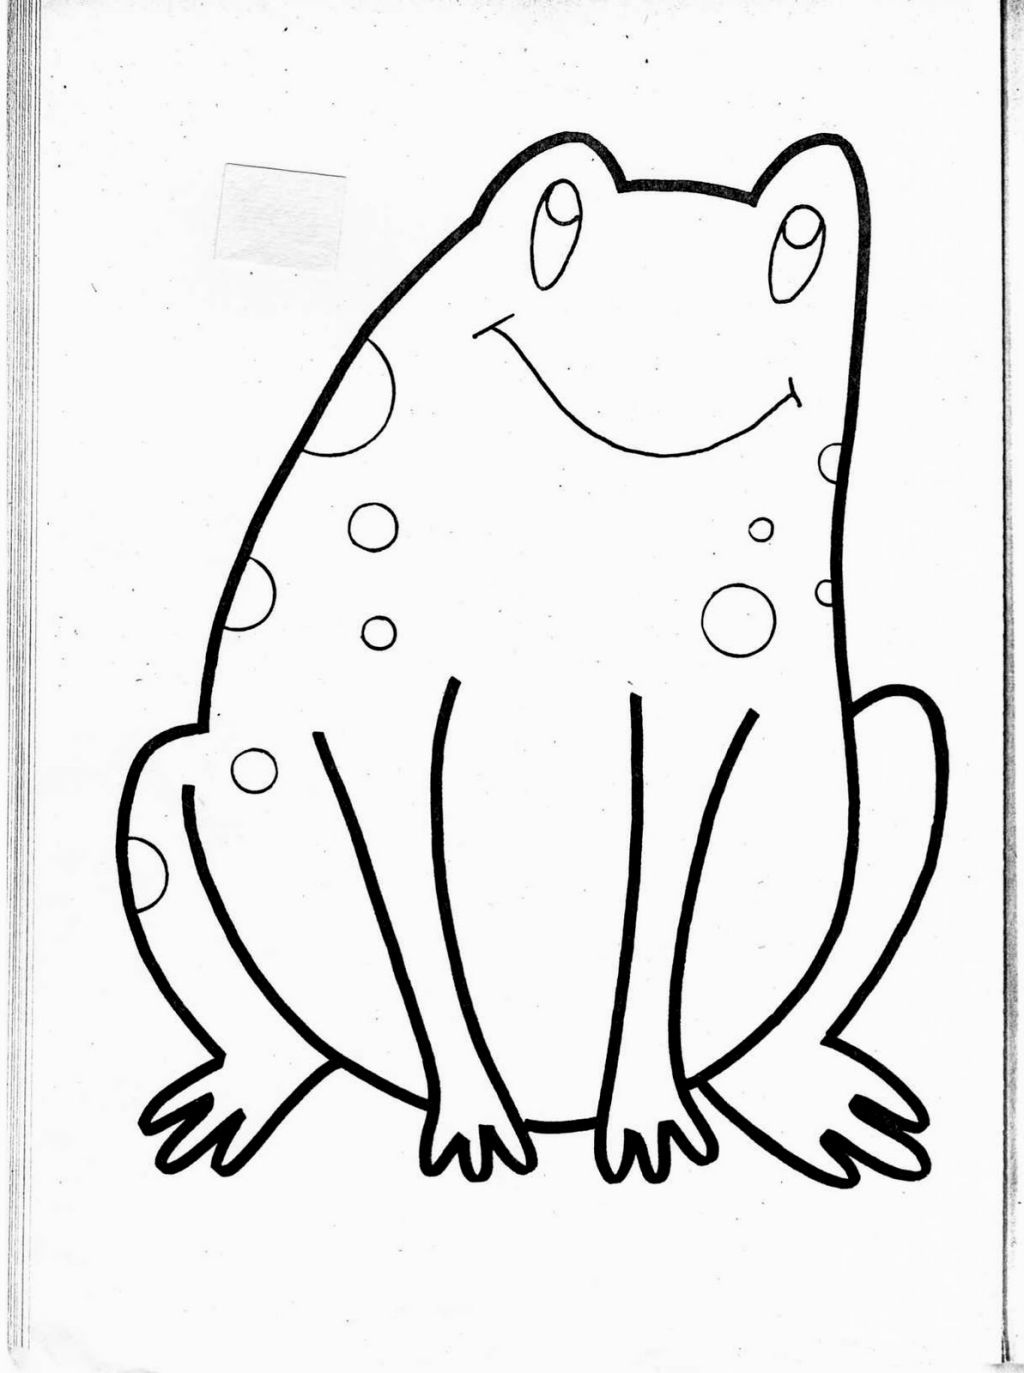 Mo Willems Pigeon Coloring Page